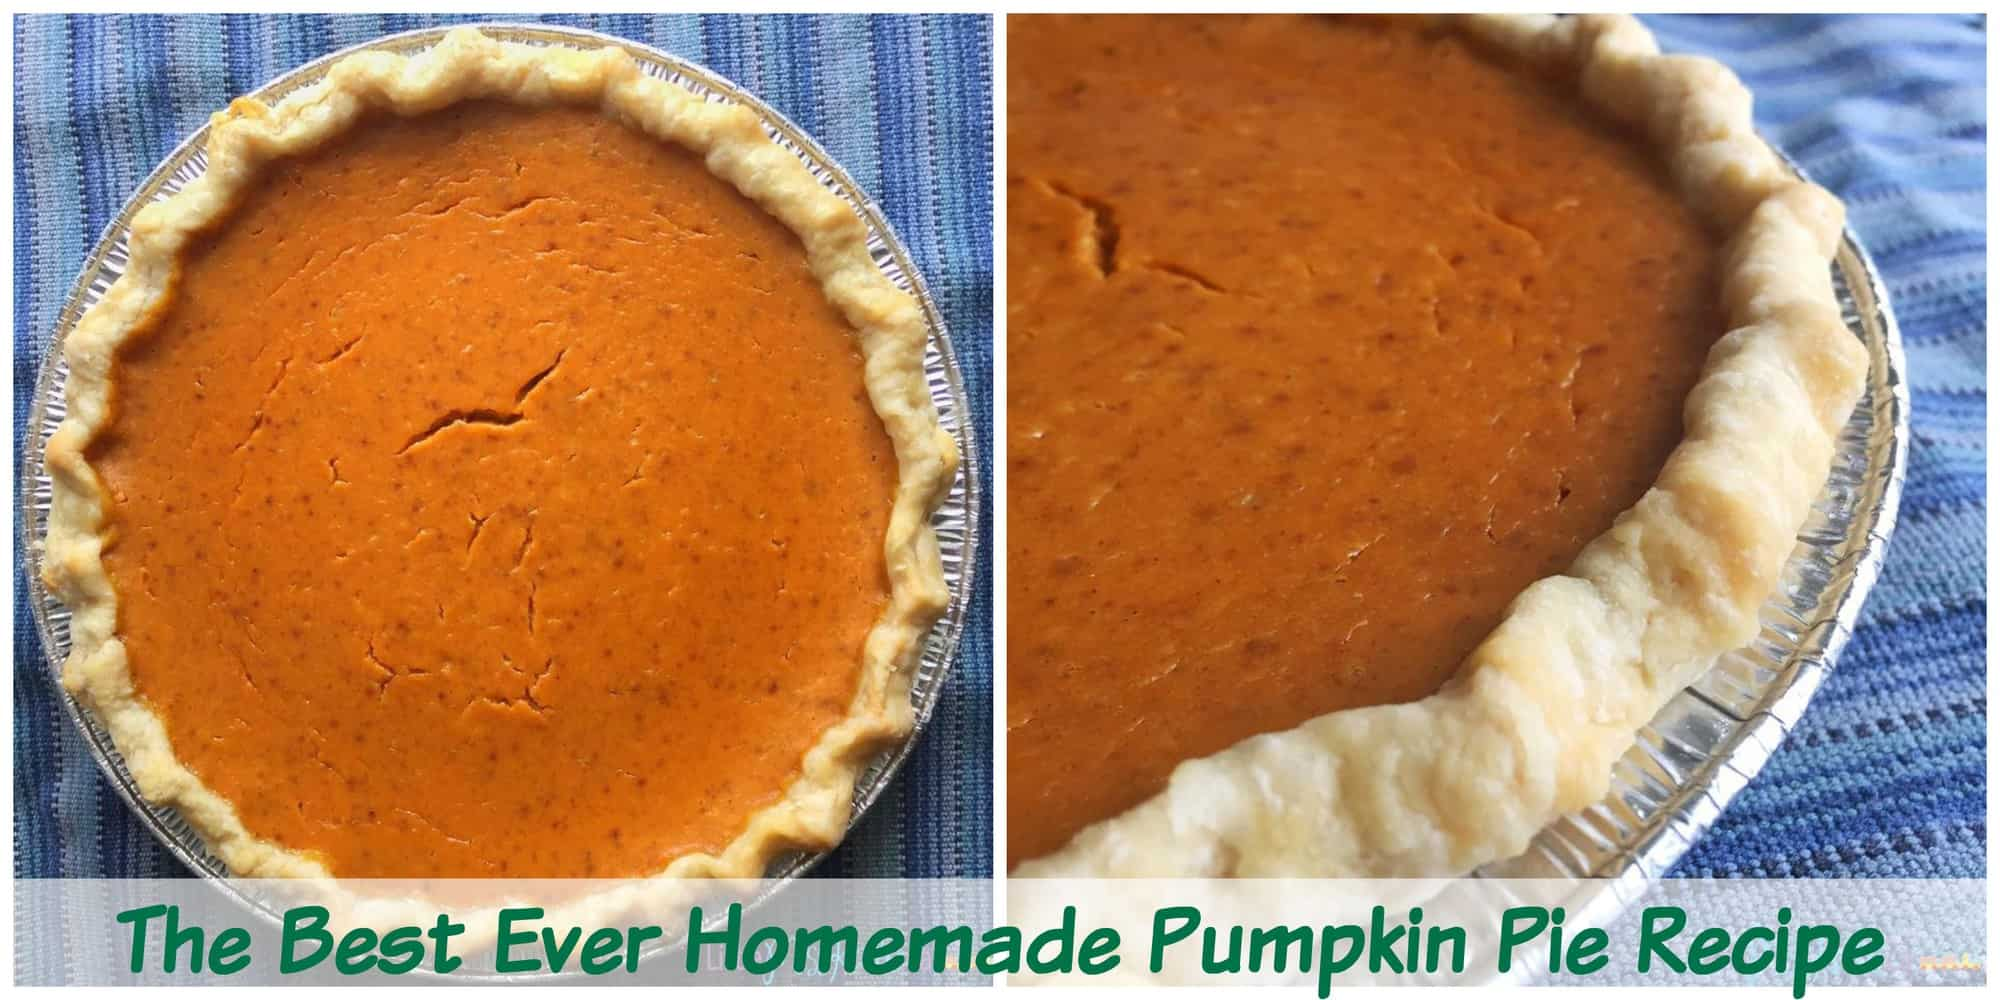 Homemade pumpkin pie made with canned pumpkin recipe